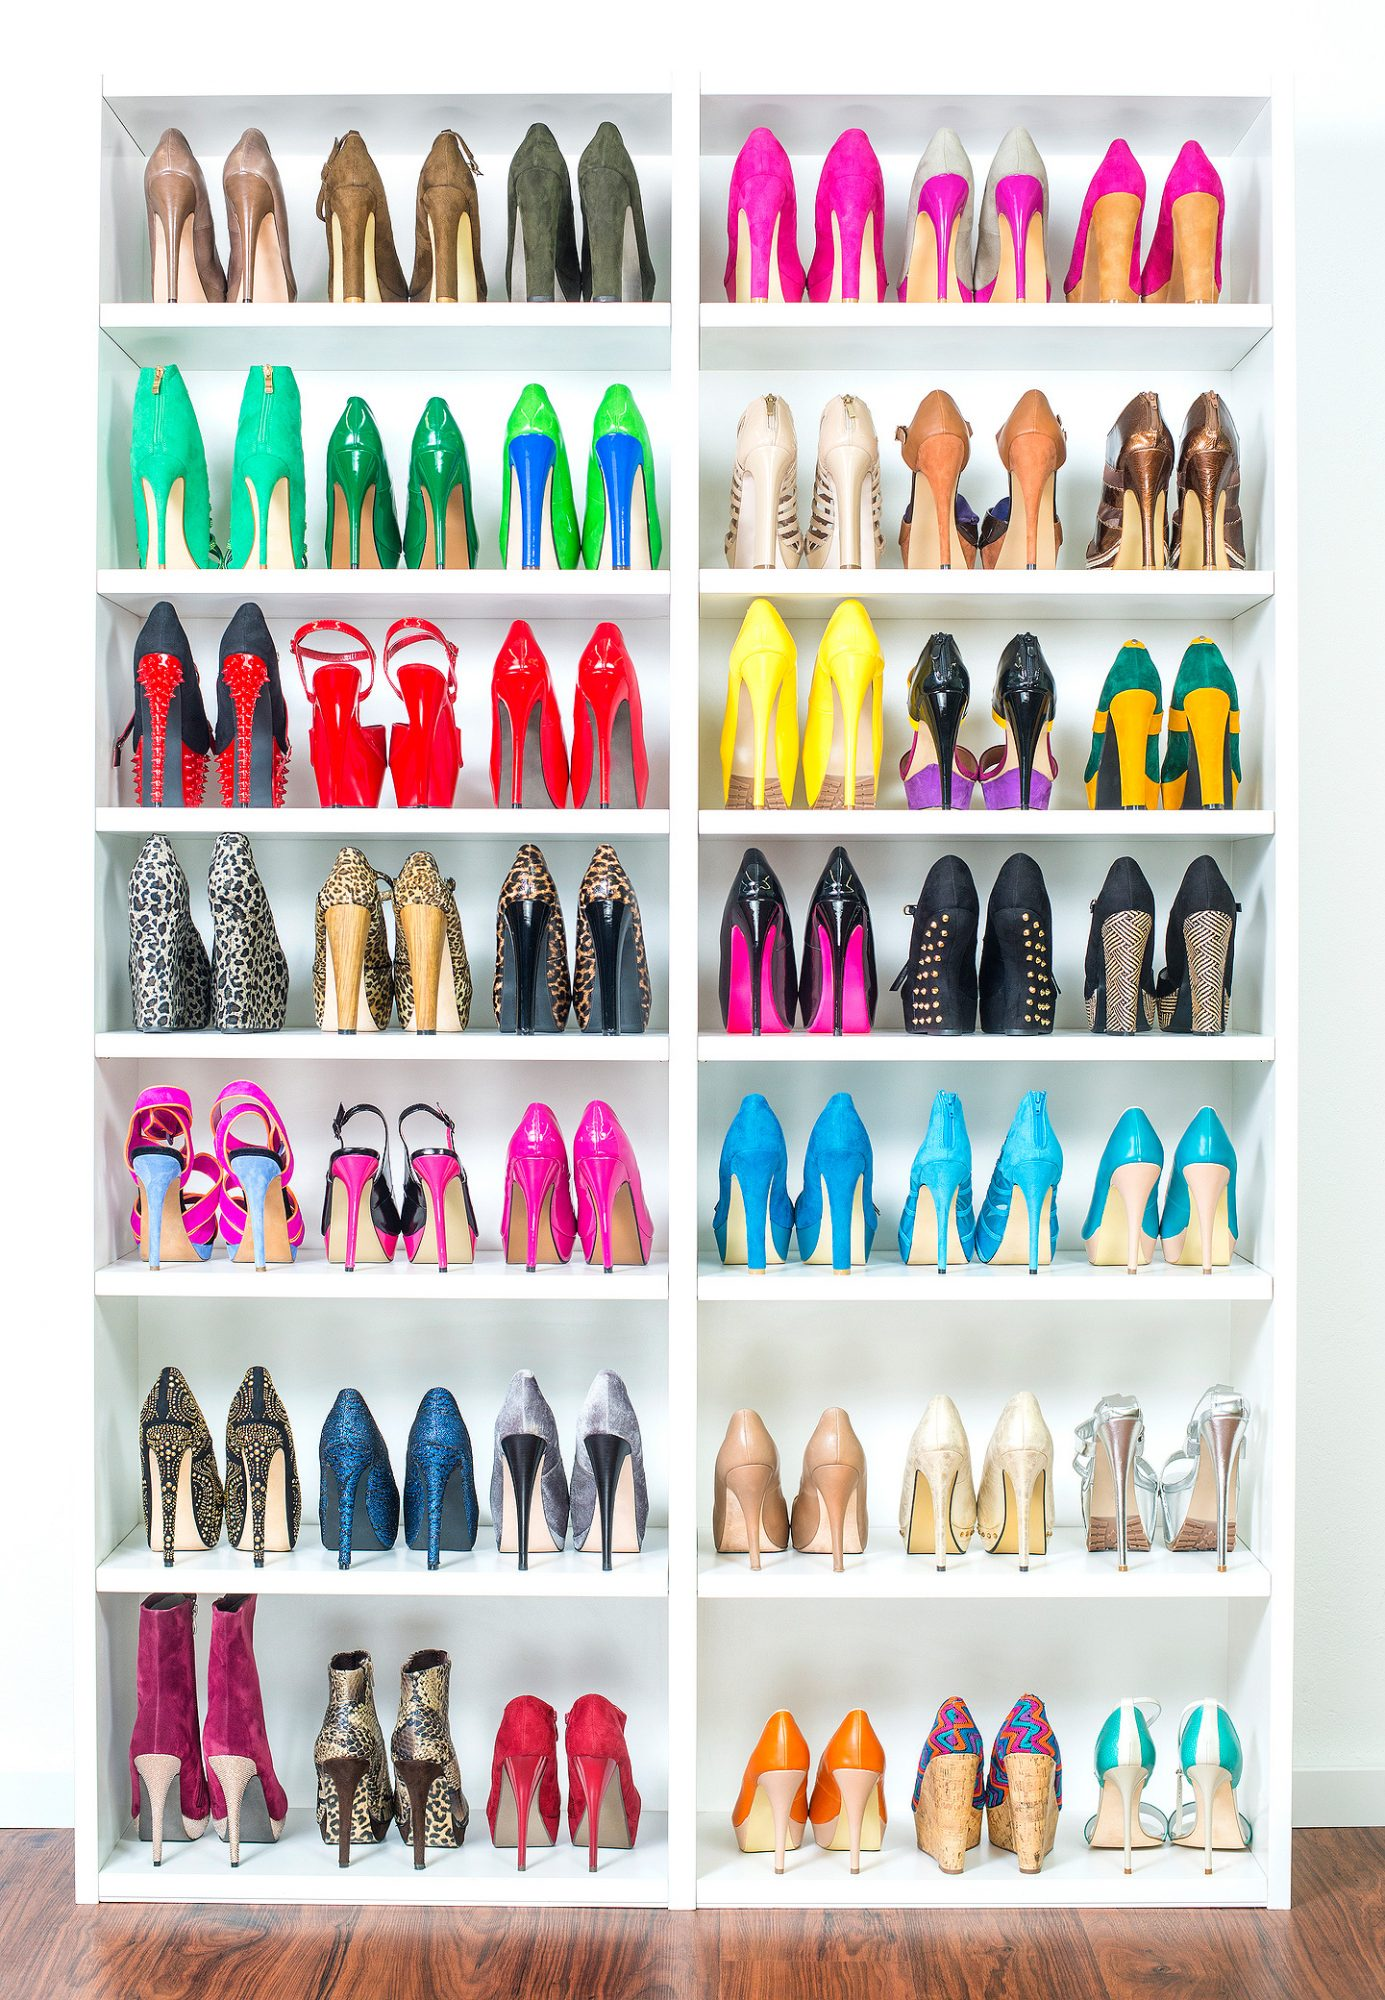 Shoe Closet with lots of colorful High Heels, XXXL image